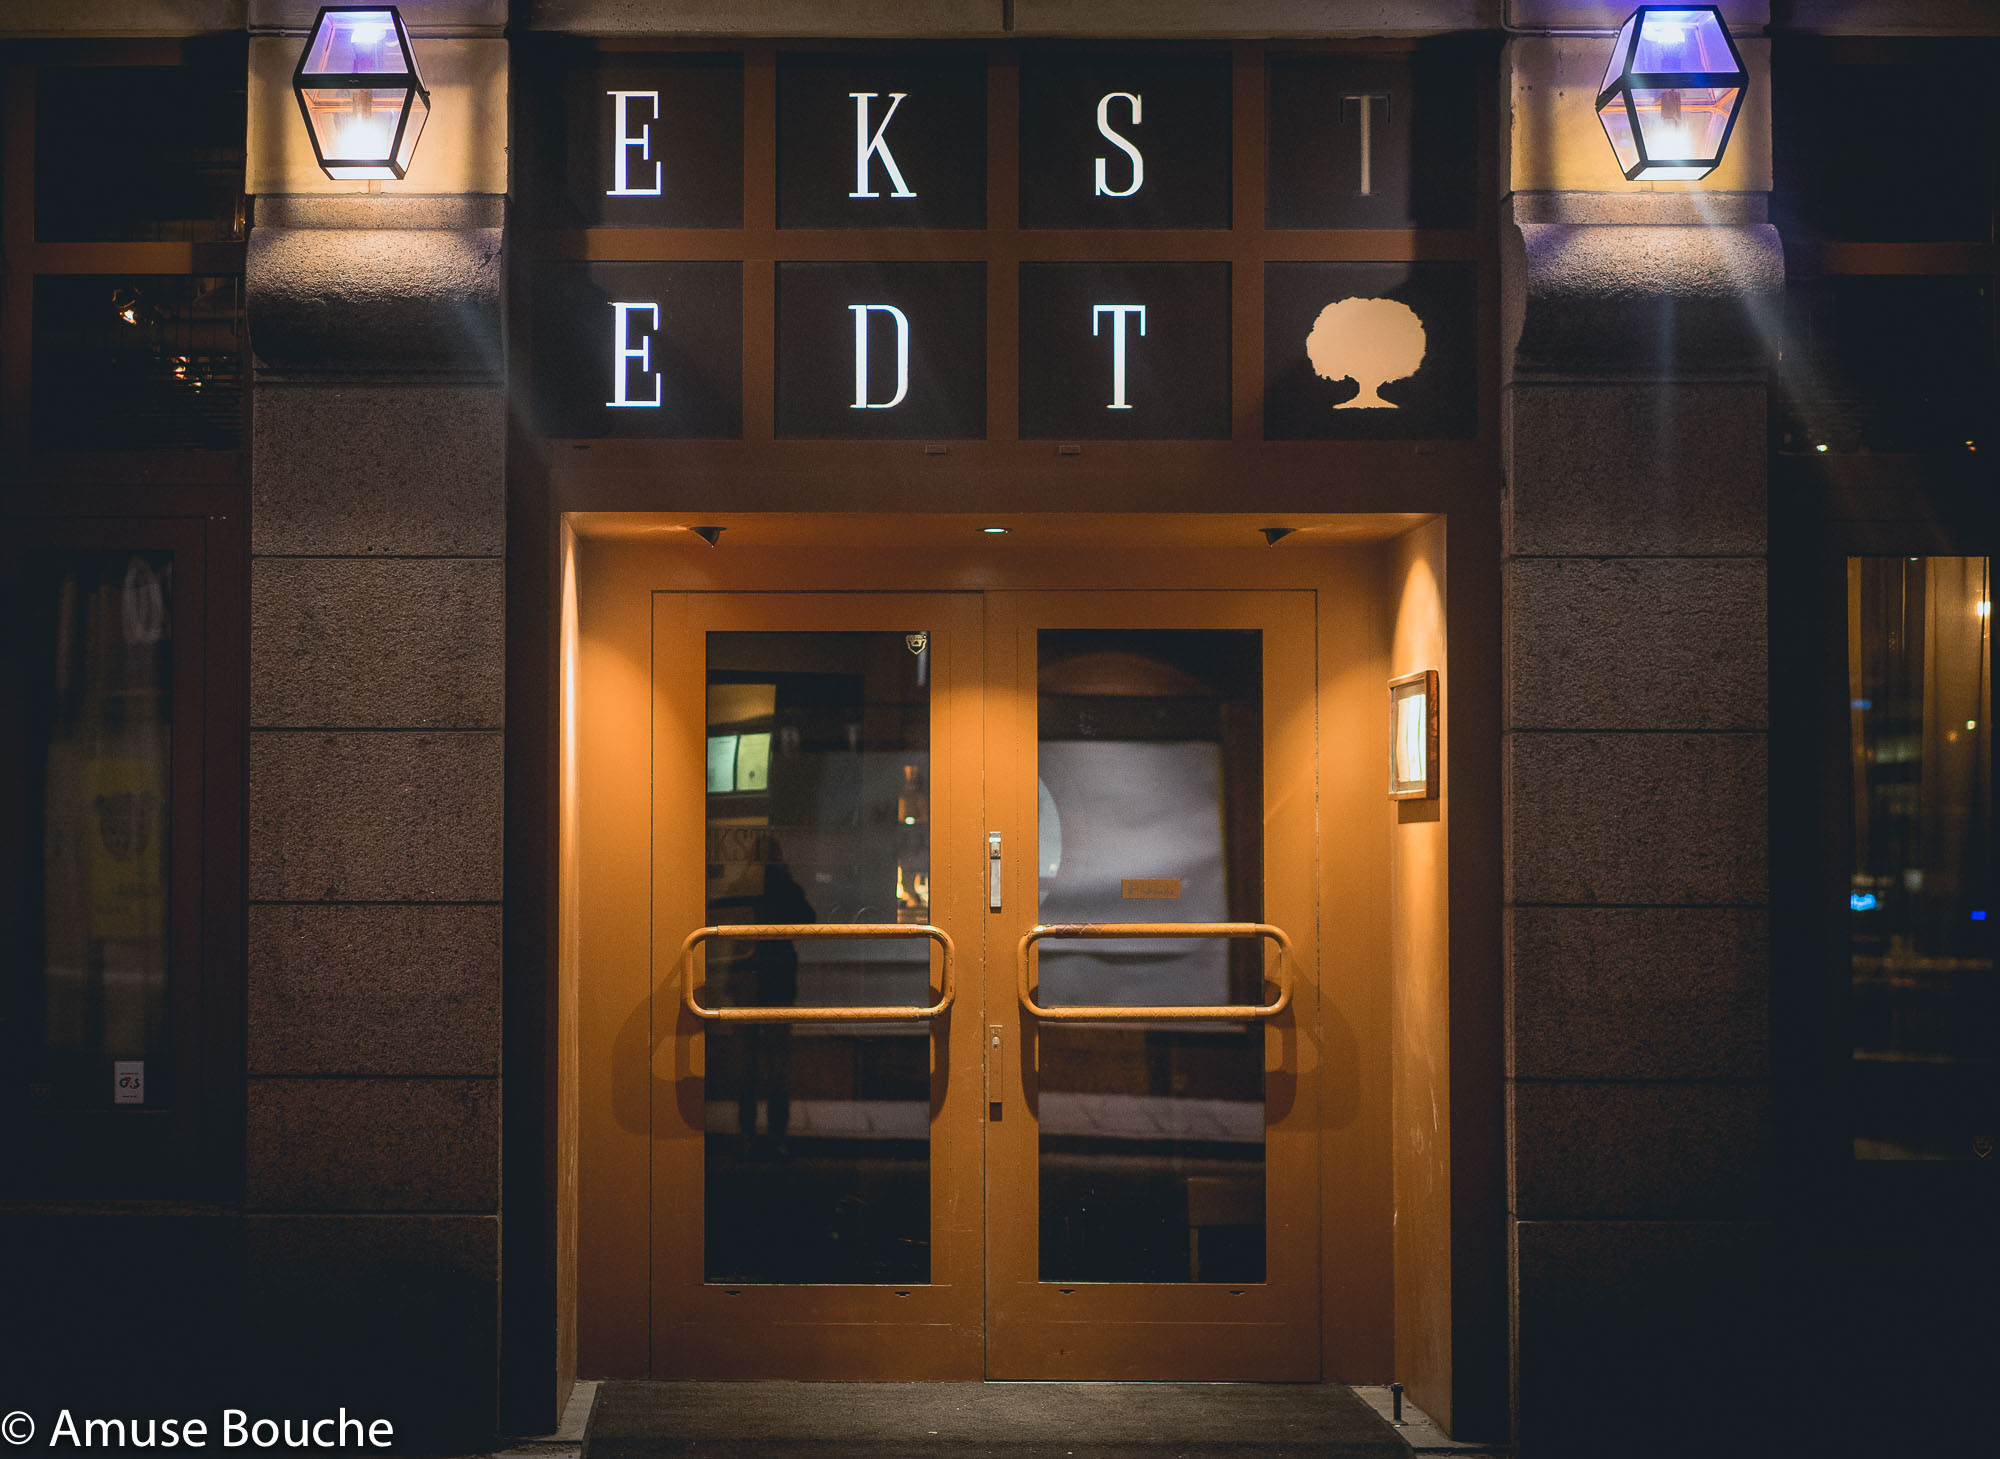 Stockholm Ekstedt Restaurant Entrance